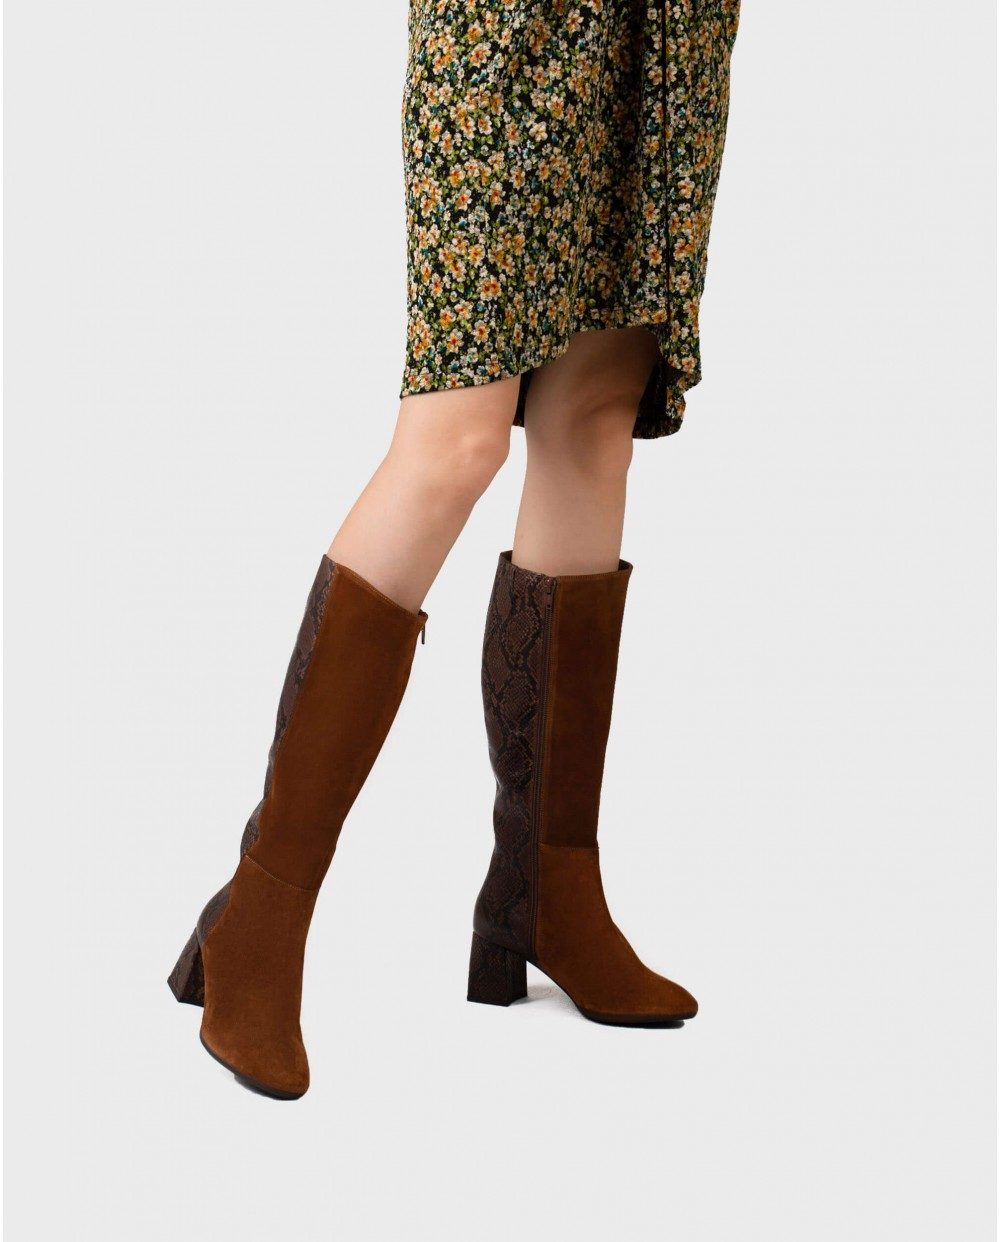 Wonders-Boots-Bi-leather boot with animal print